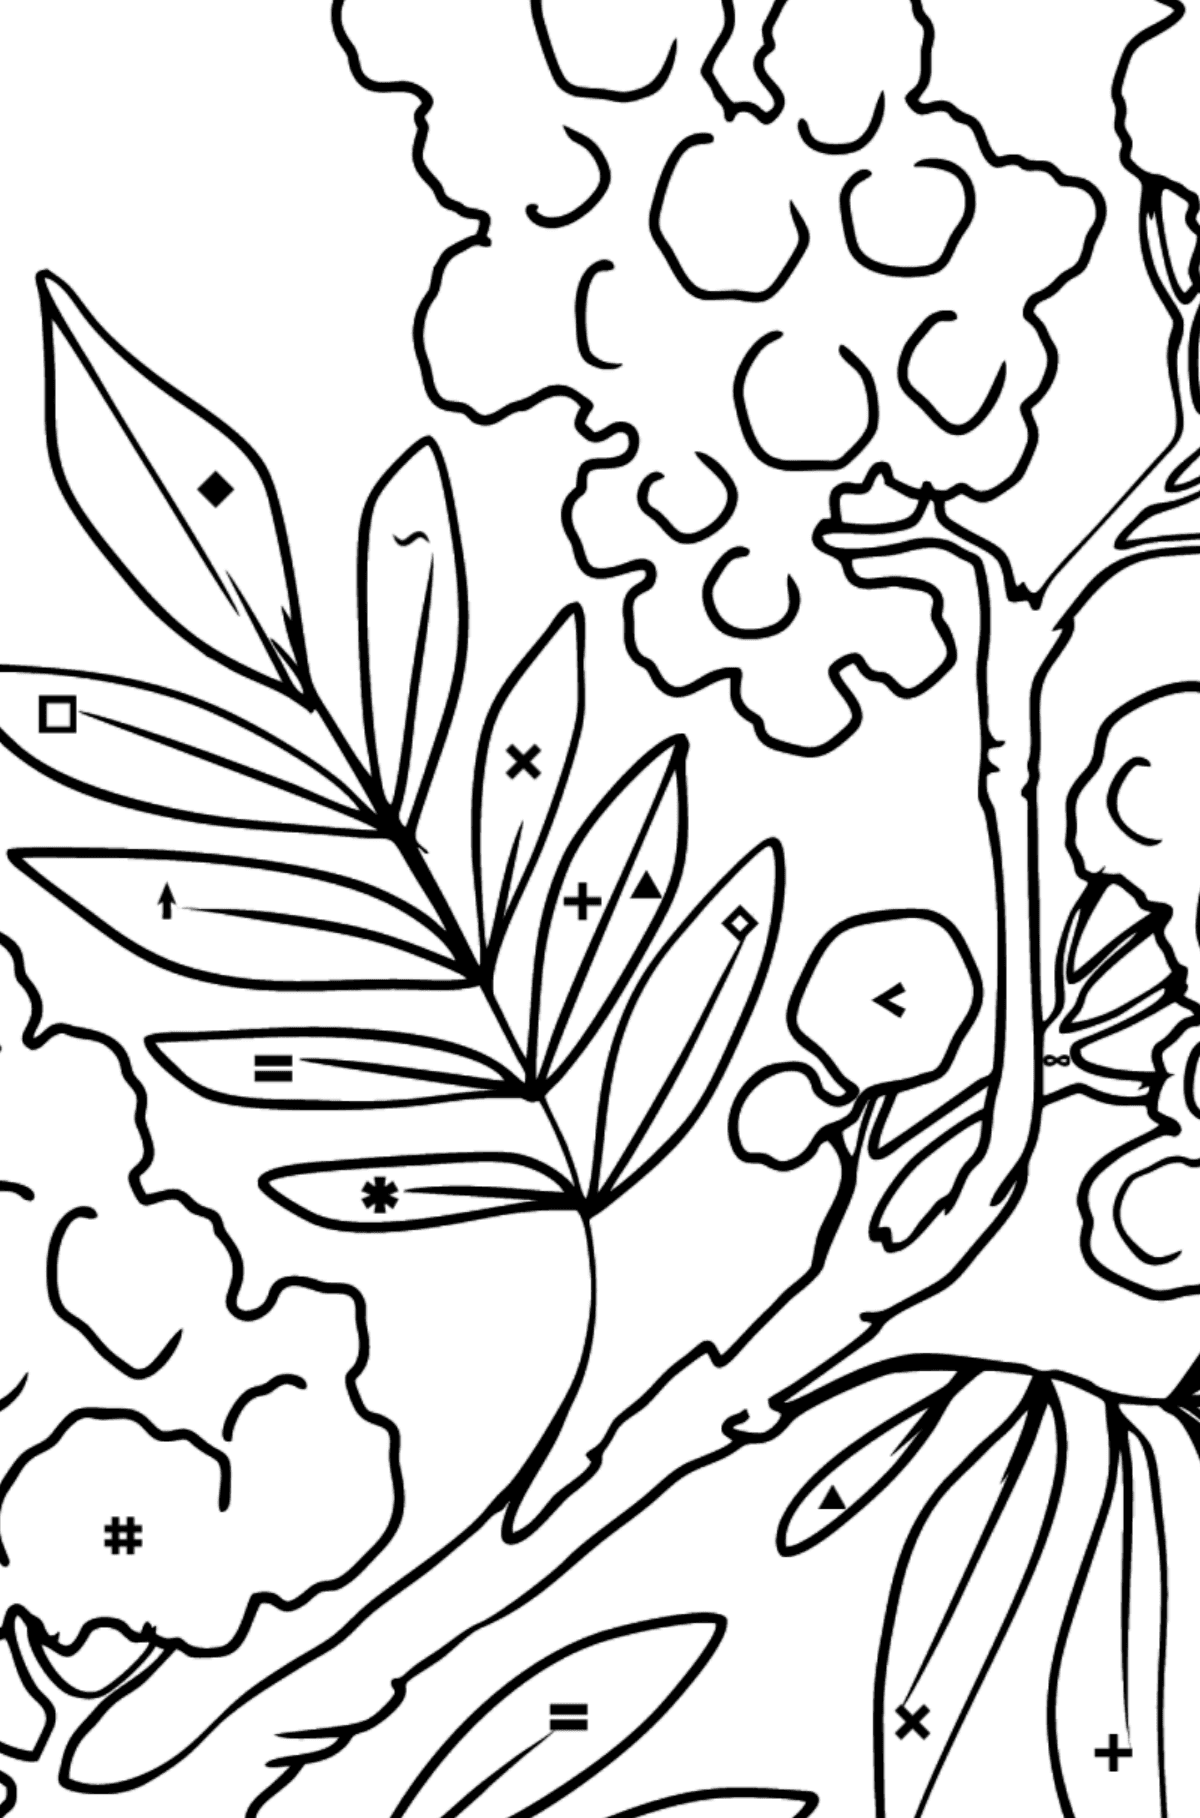 Flower Coloring Page - Mimosa - Coloring by Symbols for Kids